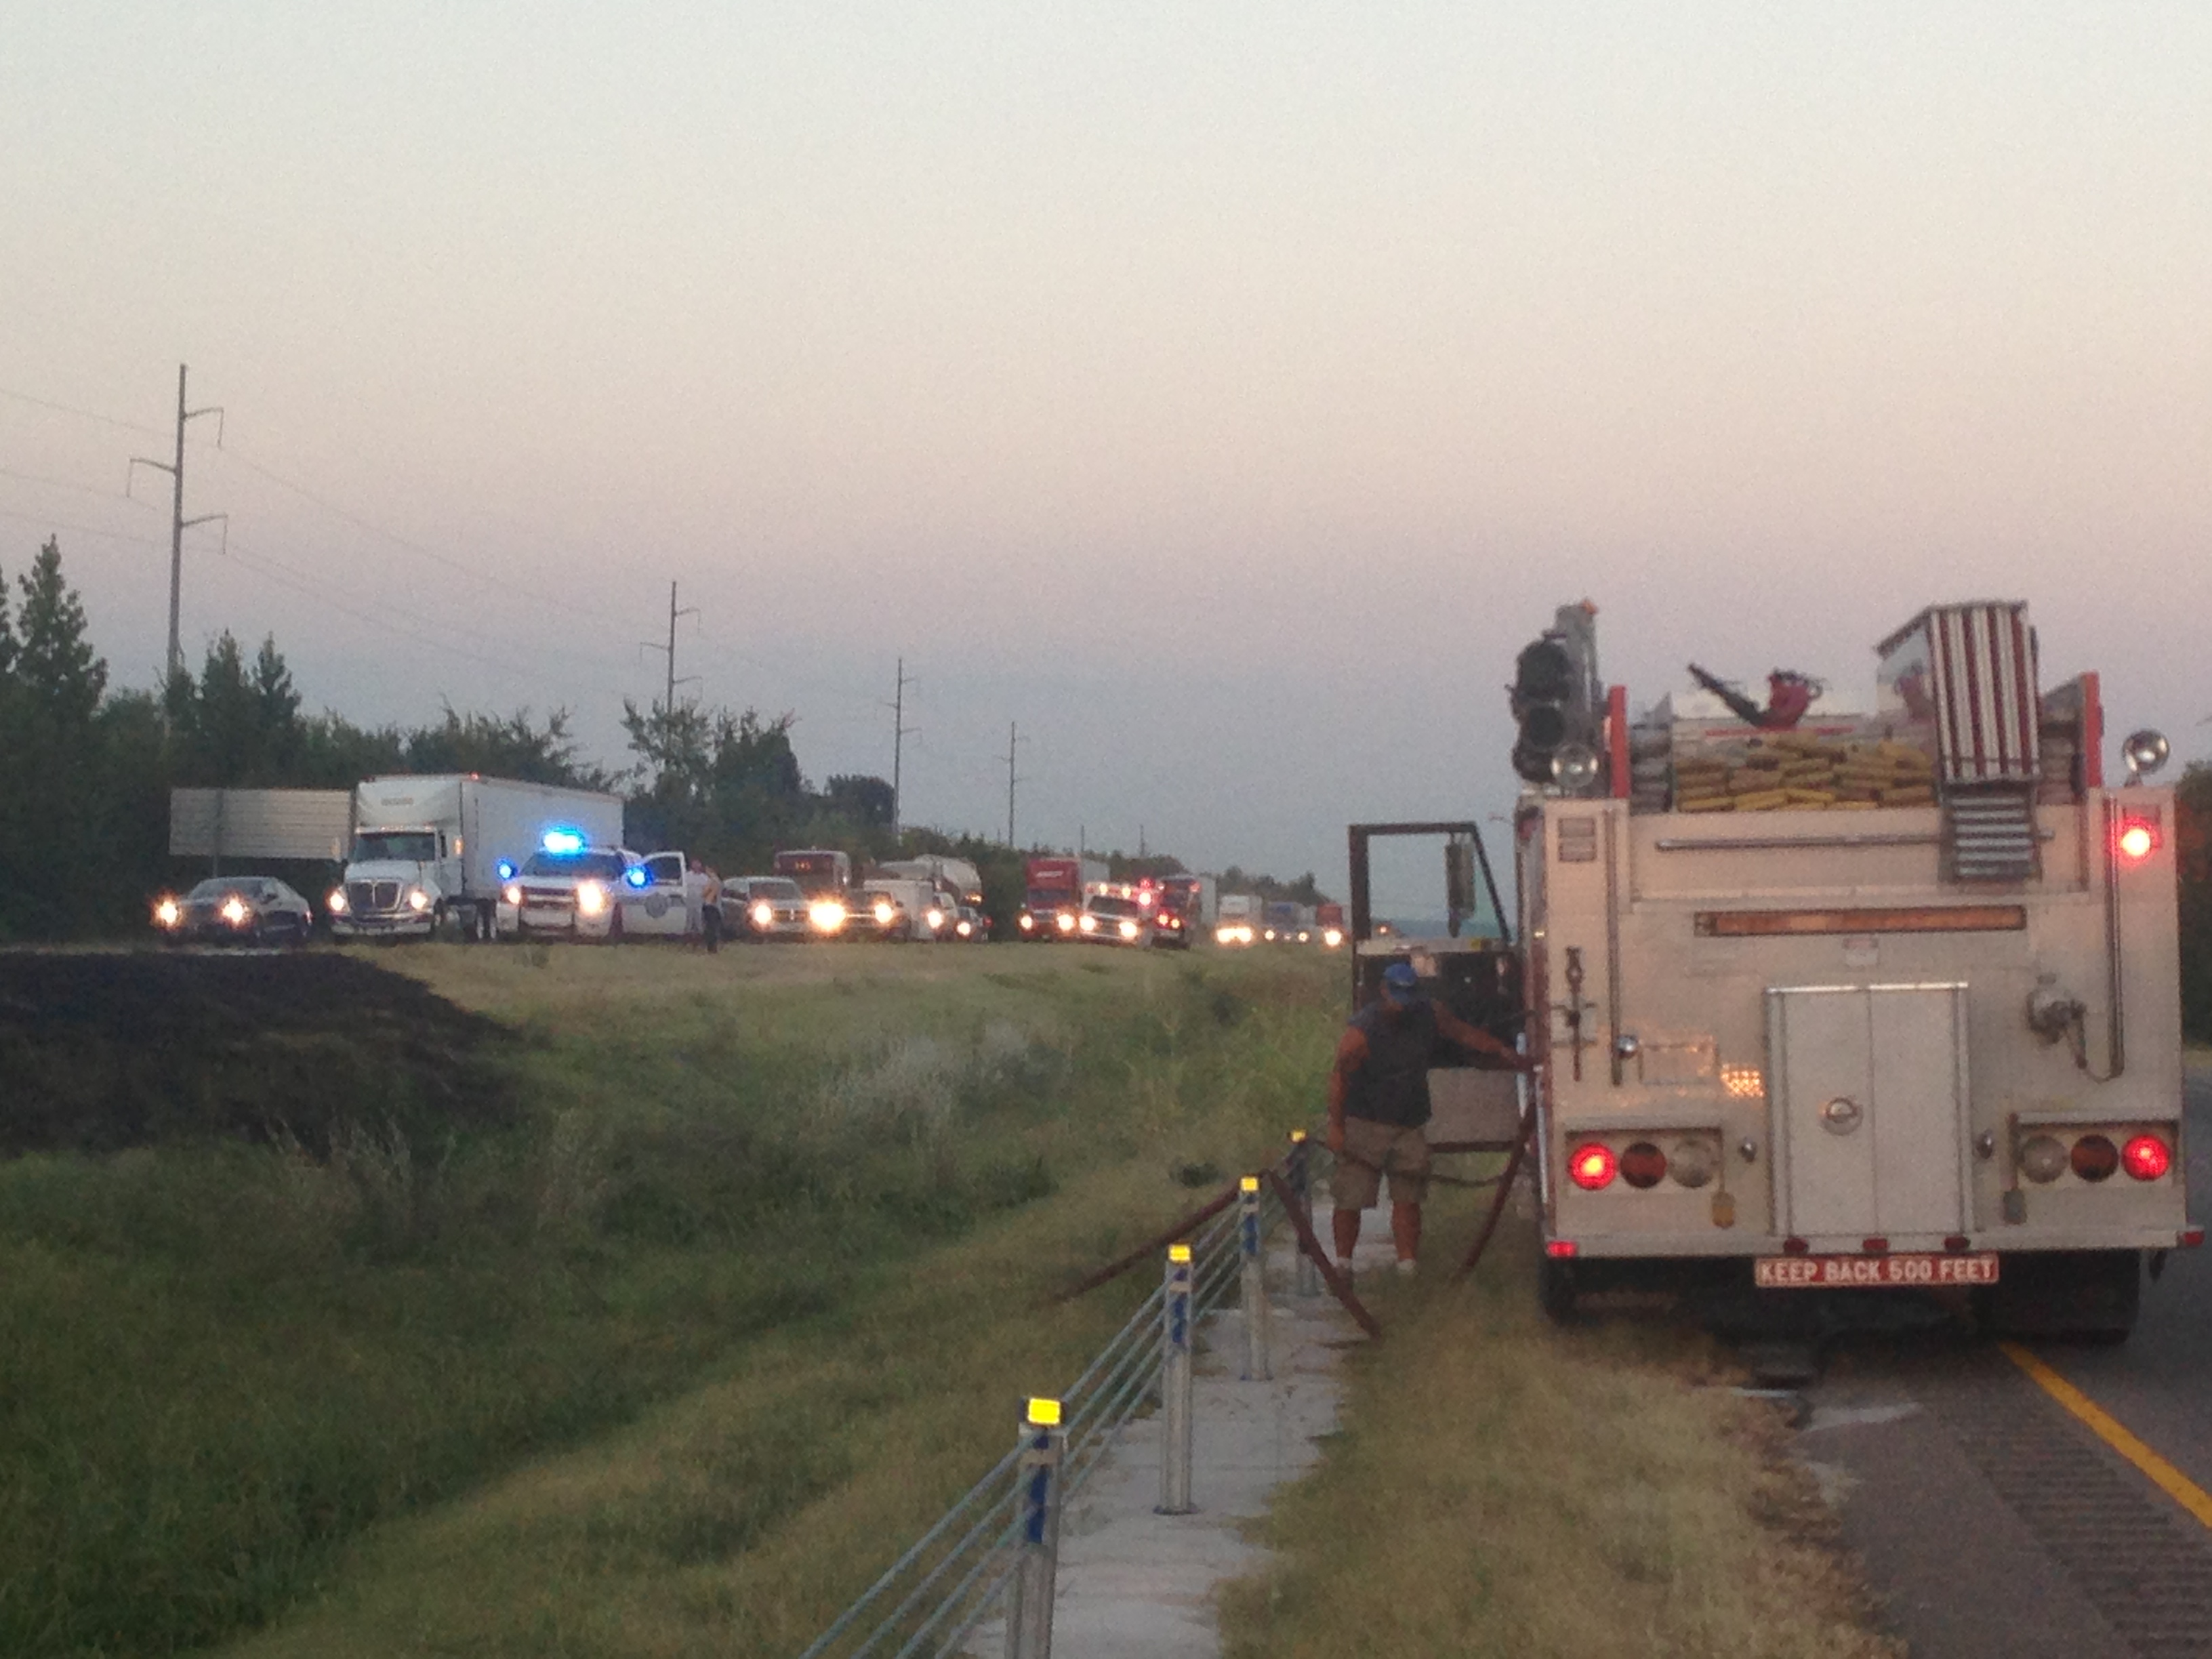 Traffic backed up after car catches fire on I-540 Monday night.